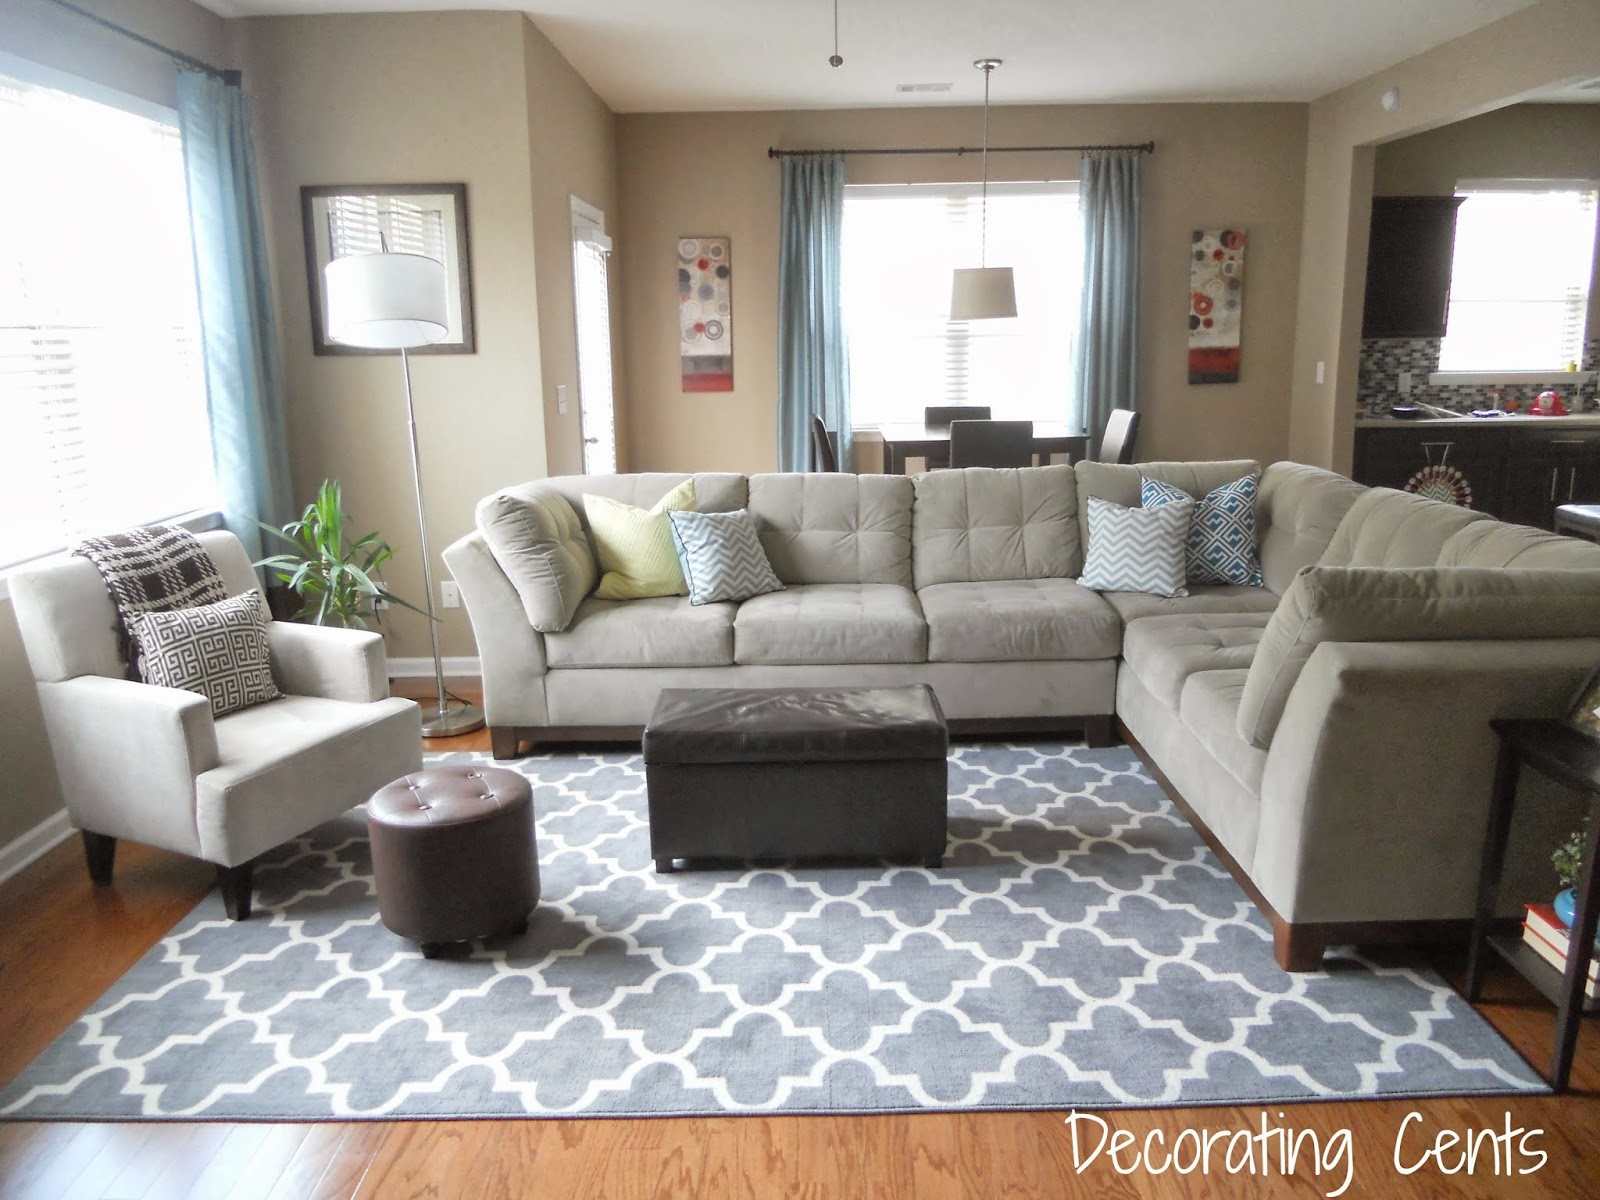 Decorating cents new family room rug for Family lounge furniture